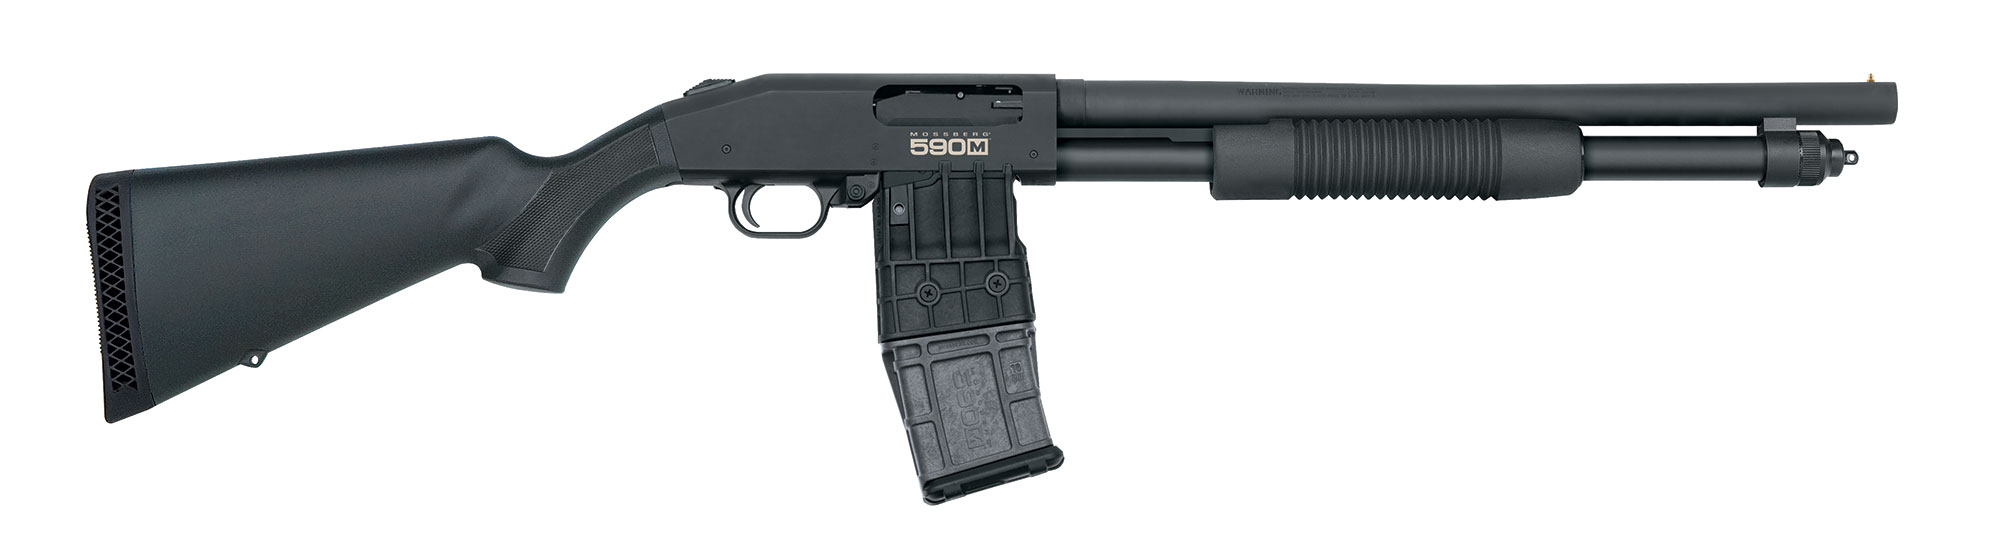 Mossberg MagFed 590 Pump shotgun right profile